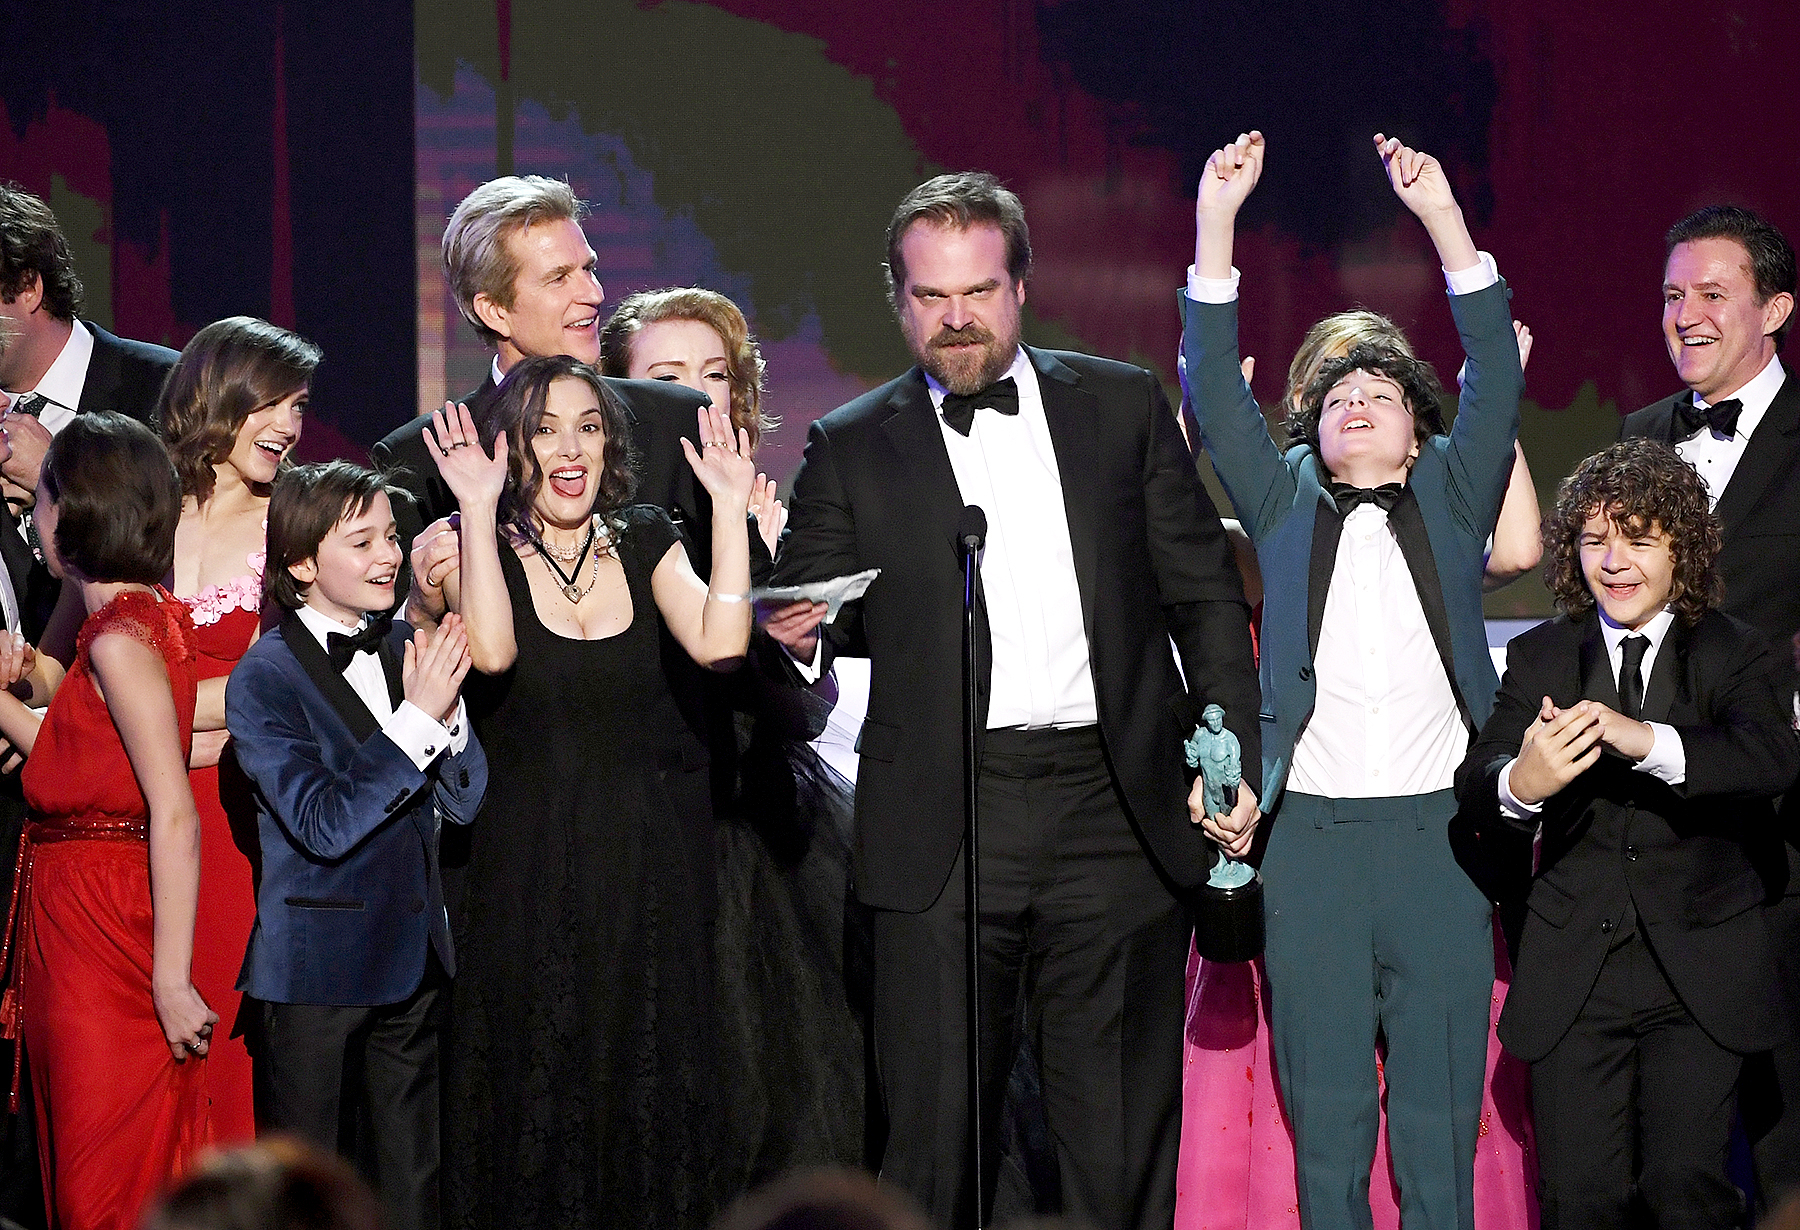 Natalia Dyer, Noah Schnapp, Winona Ryder, Matthew Modine, Shannon Purser, David Harbour, Finn Wolfhard and Gaten Matarazzo of 'Stranger Things' accept Outstanding Performance by an Ensemble in a Drama Series onstage during the 23rd Annual Screen Actors Guild Awards at the Shrine Auditorium on Jan. 29, 2017, in Los Angeles.